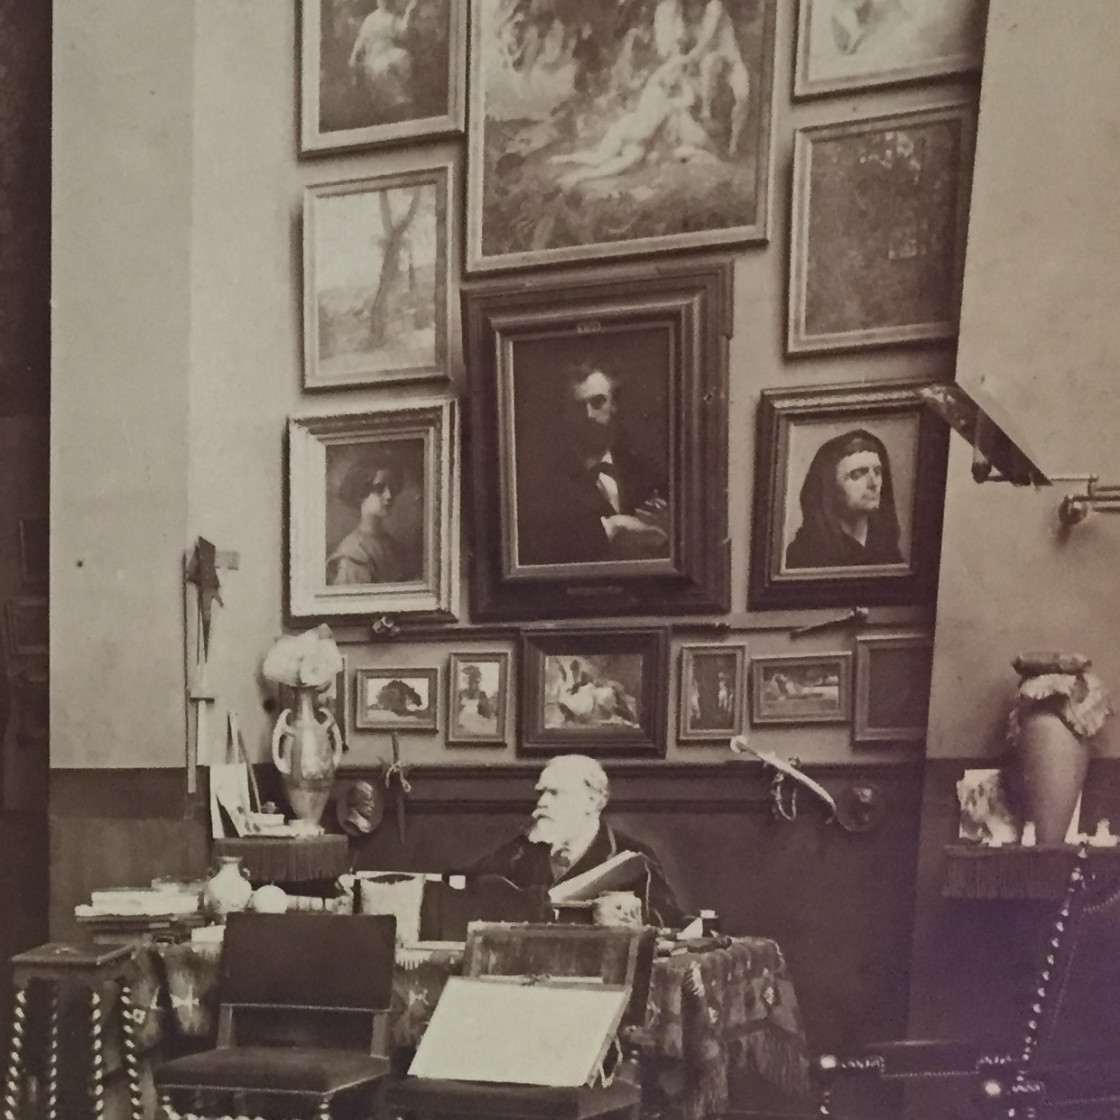 Cabanel in his studio with Paradise Lost on the wall above.